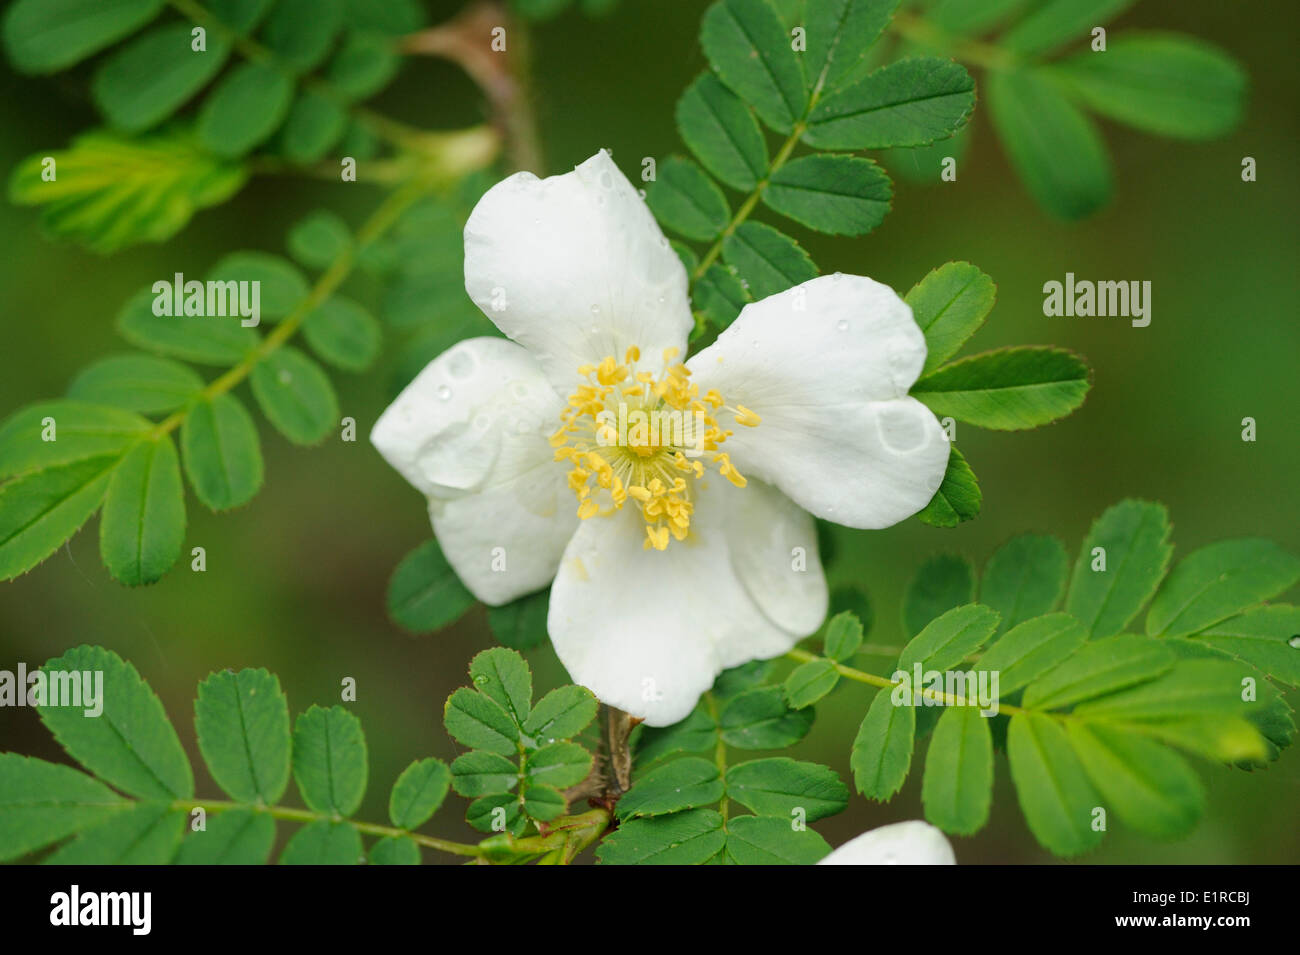 Flowering Whingthorn Rose with the exceptional wide thorns - Stock Image